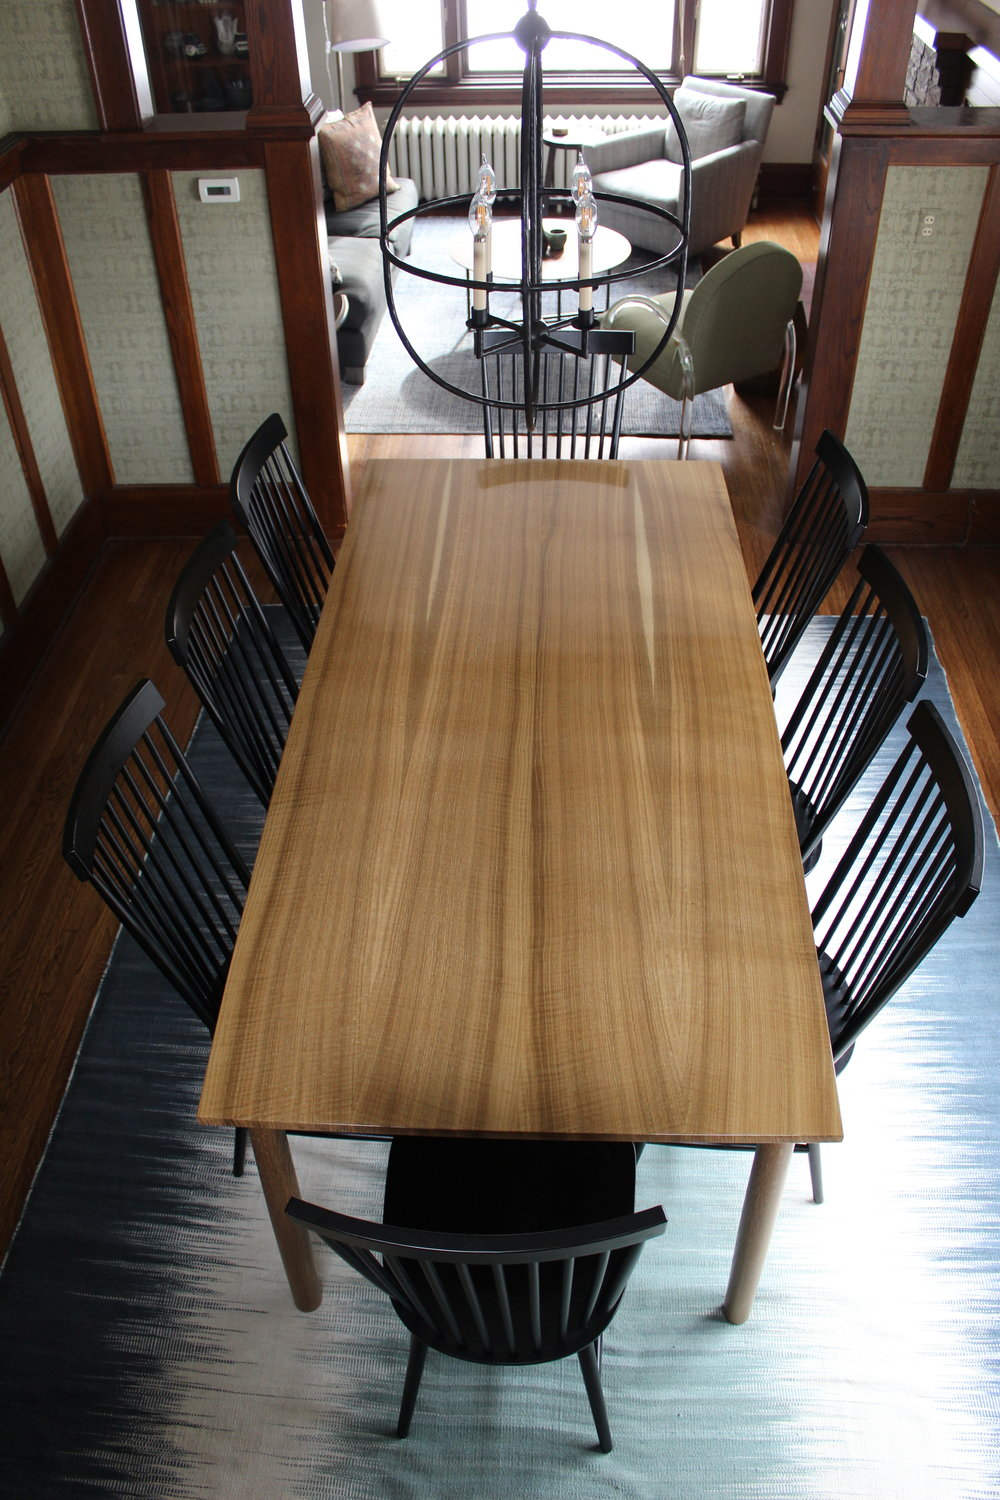 Fumed White Oak Table -w_ Chairs Overhead.JPG